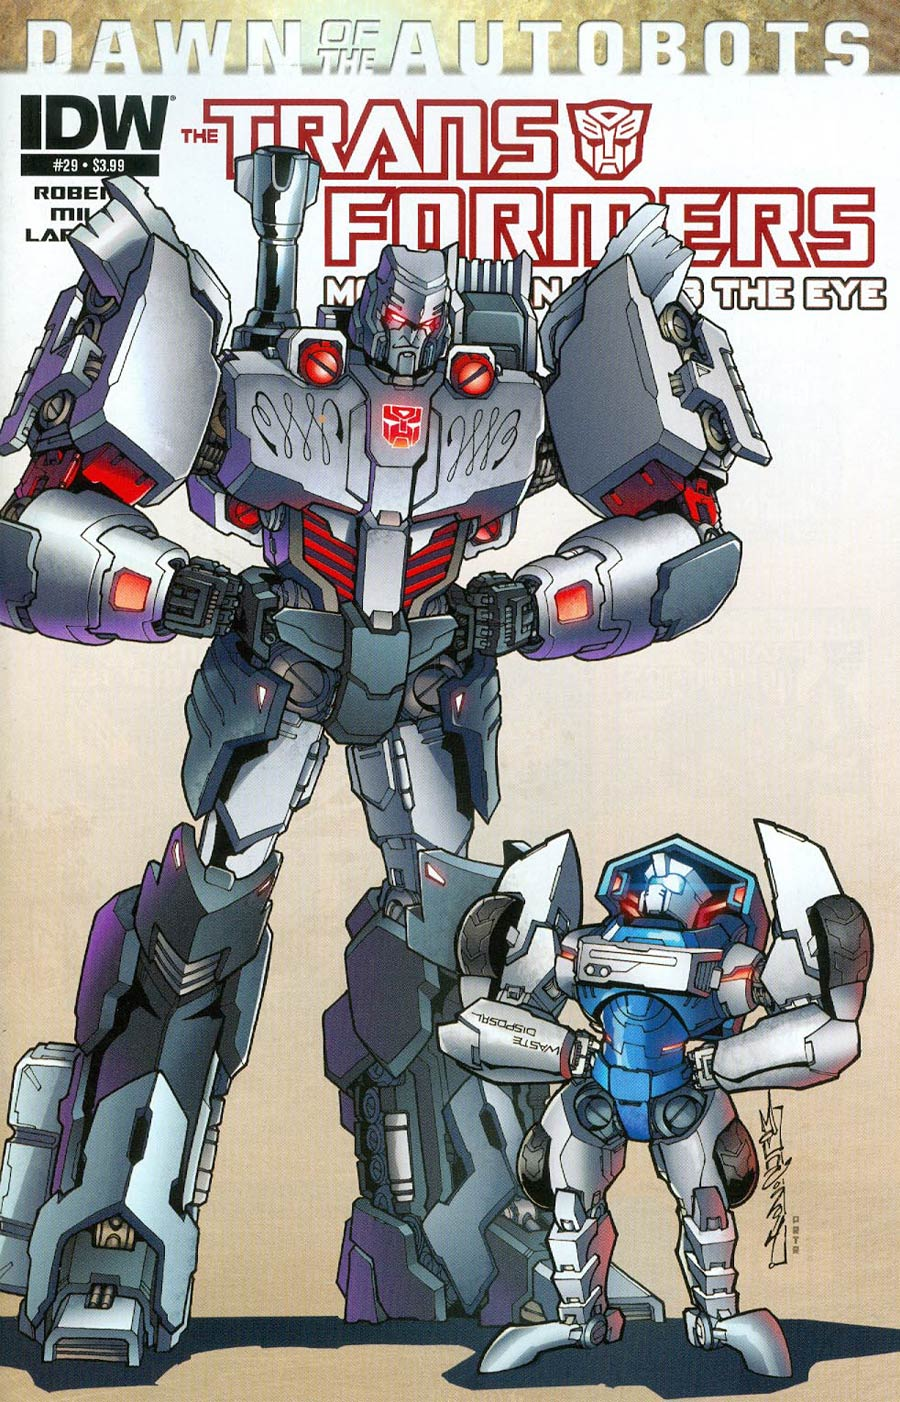 Transformers More Than Meets The Eye #29 Cover A Regular Alex Milne (Dawn Of The Autobots Tie-In)